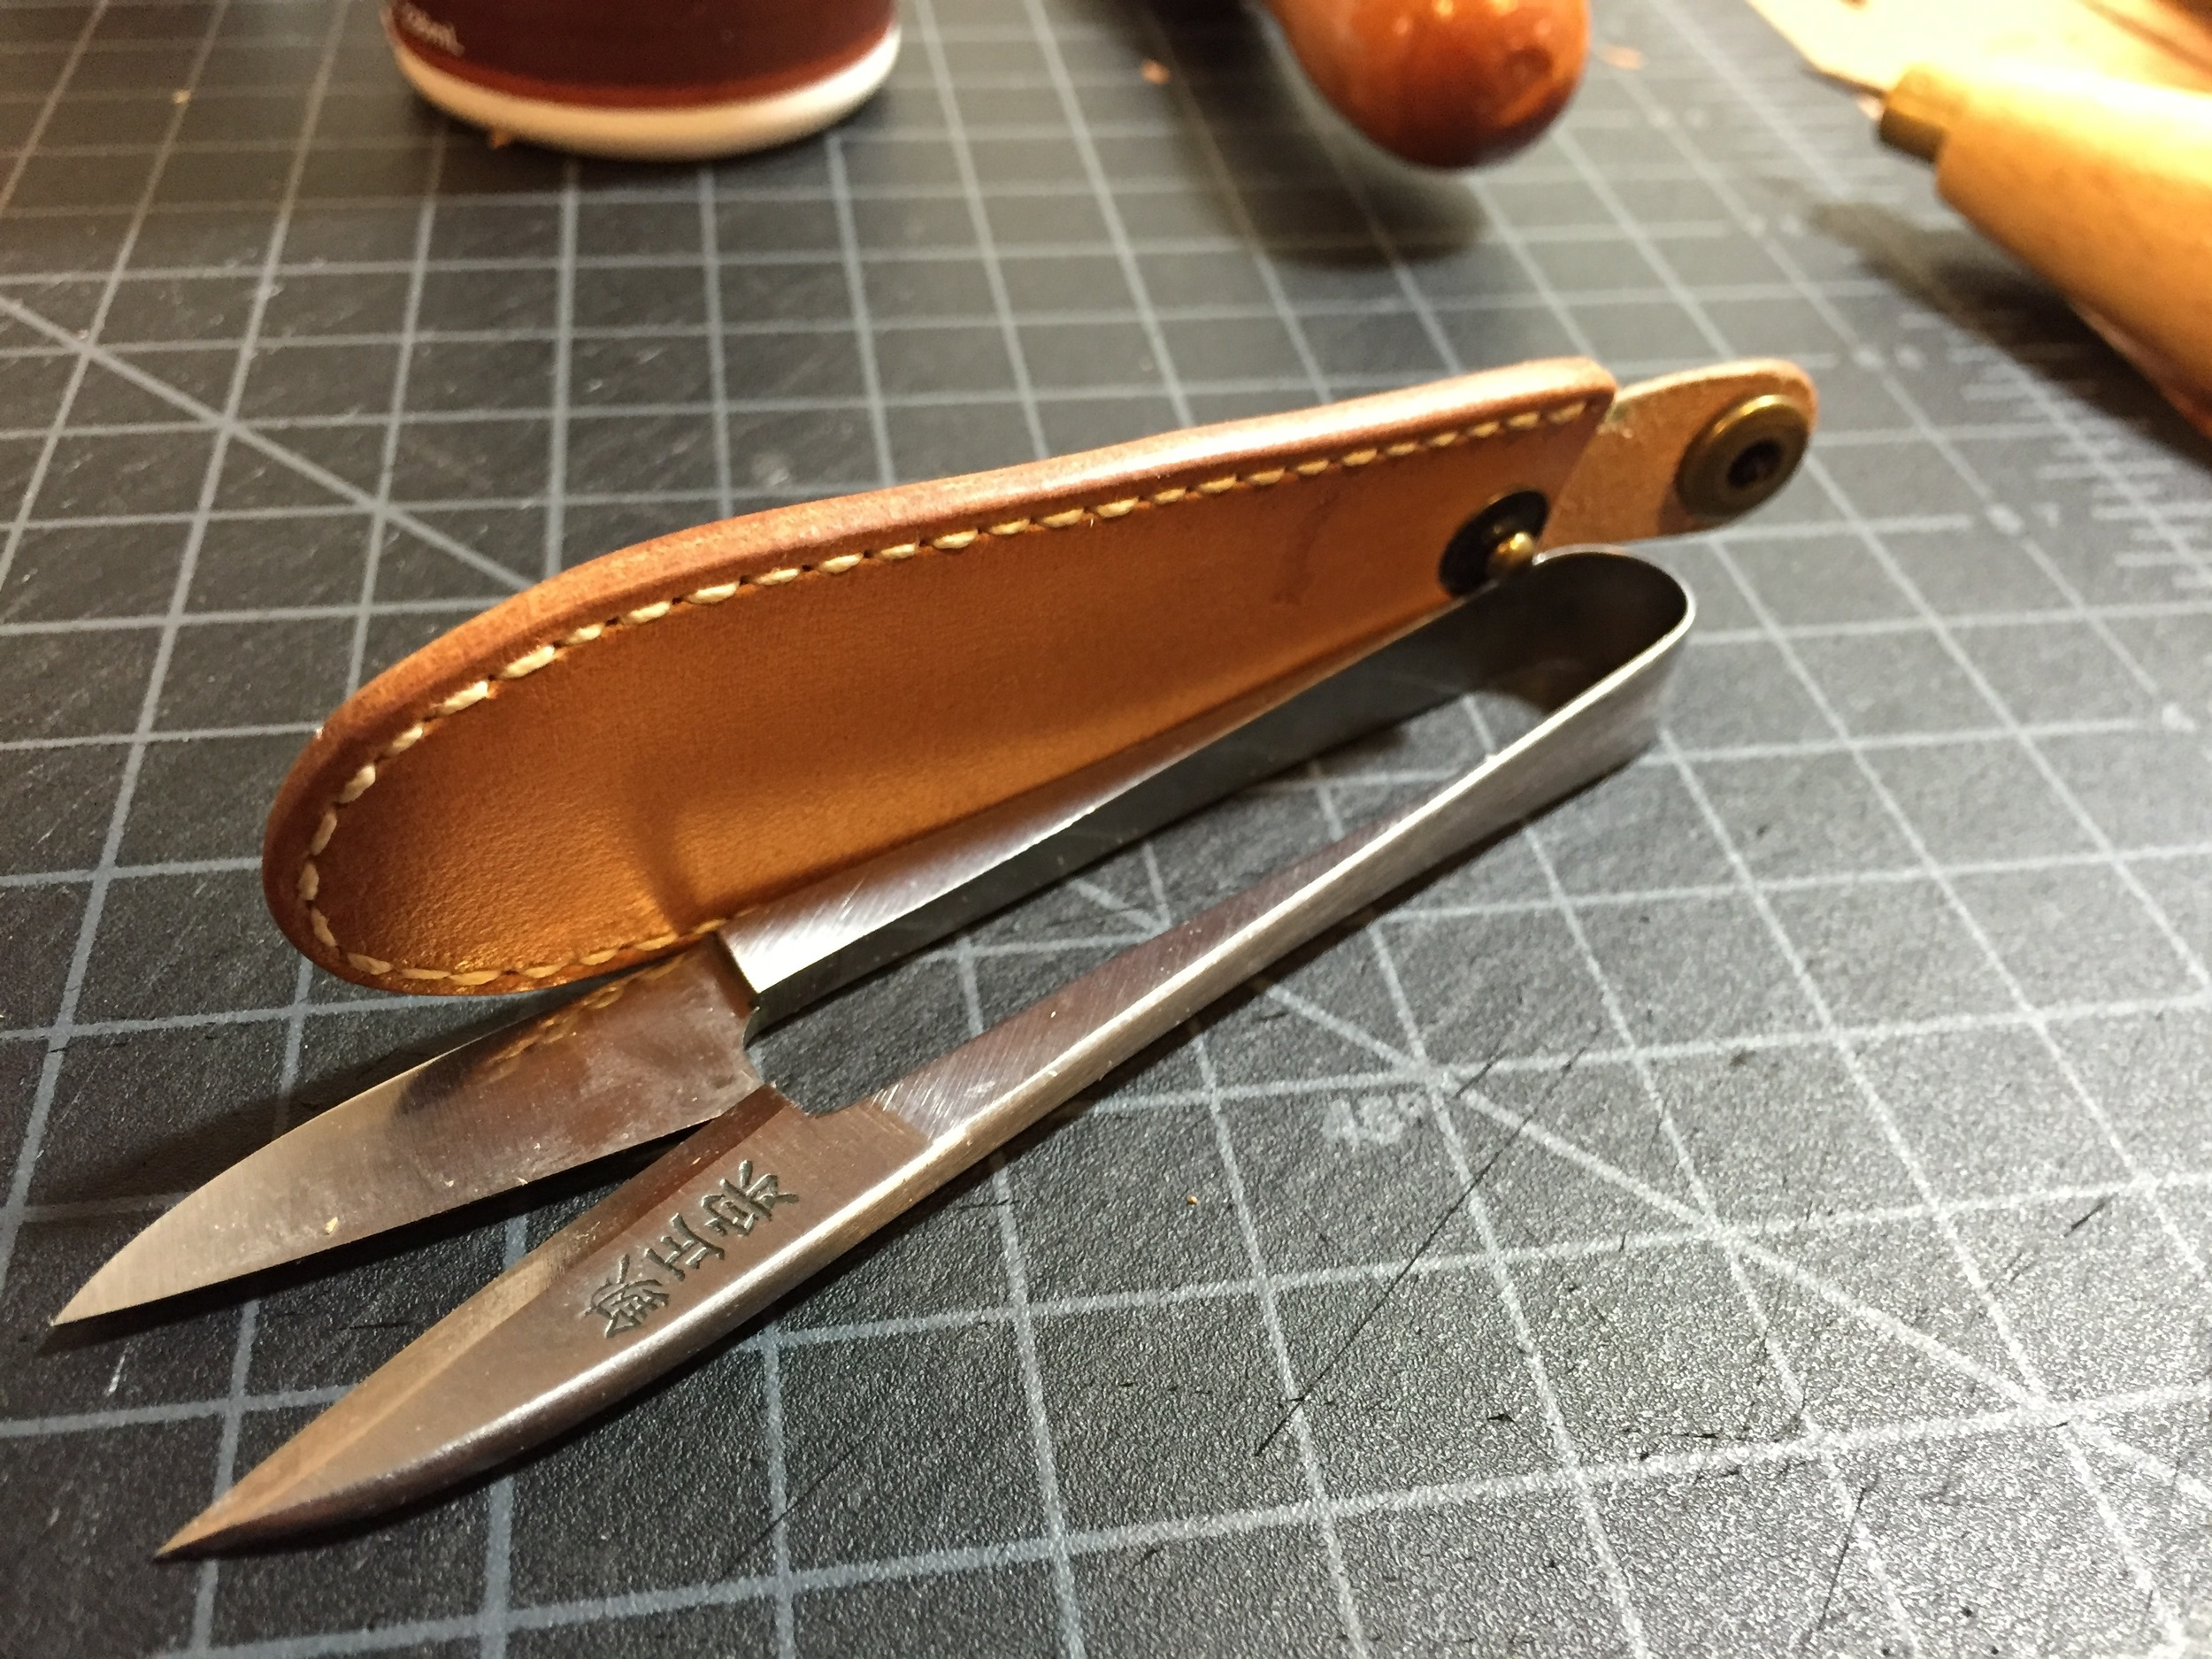 And here it is, burnished to a nice smooth edge. I use a couple of different burnishing methods, but for this one I dampened the edge with water and burnished with canvas, then rubbed in some beeswax until it became smooth with a bit of shine.